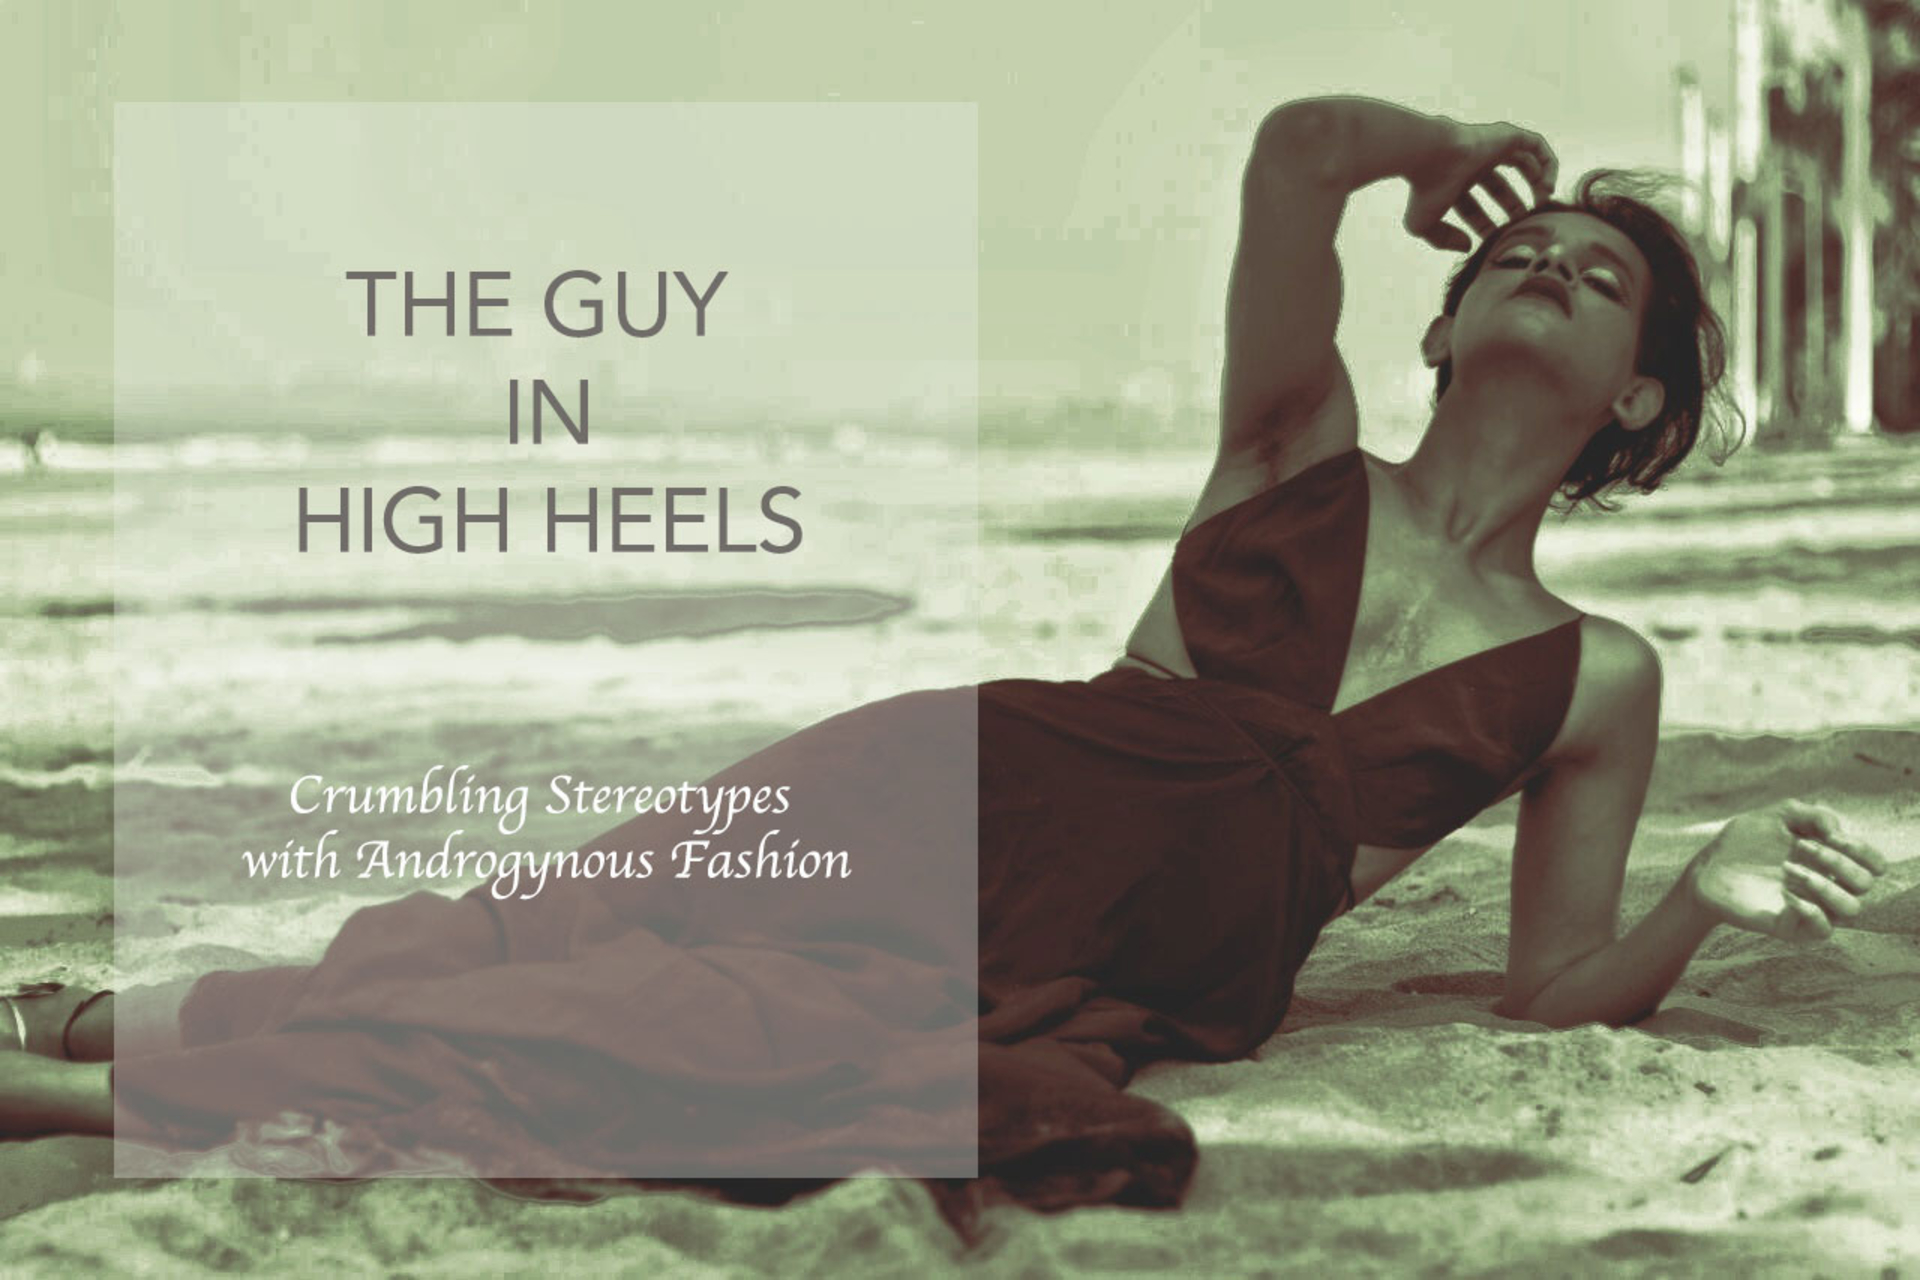 Crumbling Stereotypes Under His Heels image